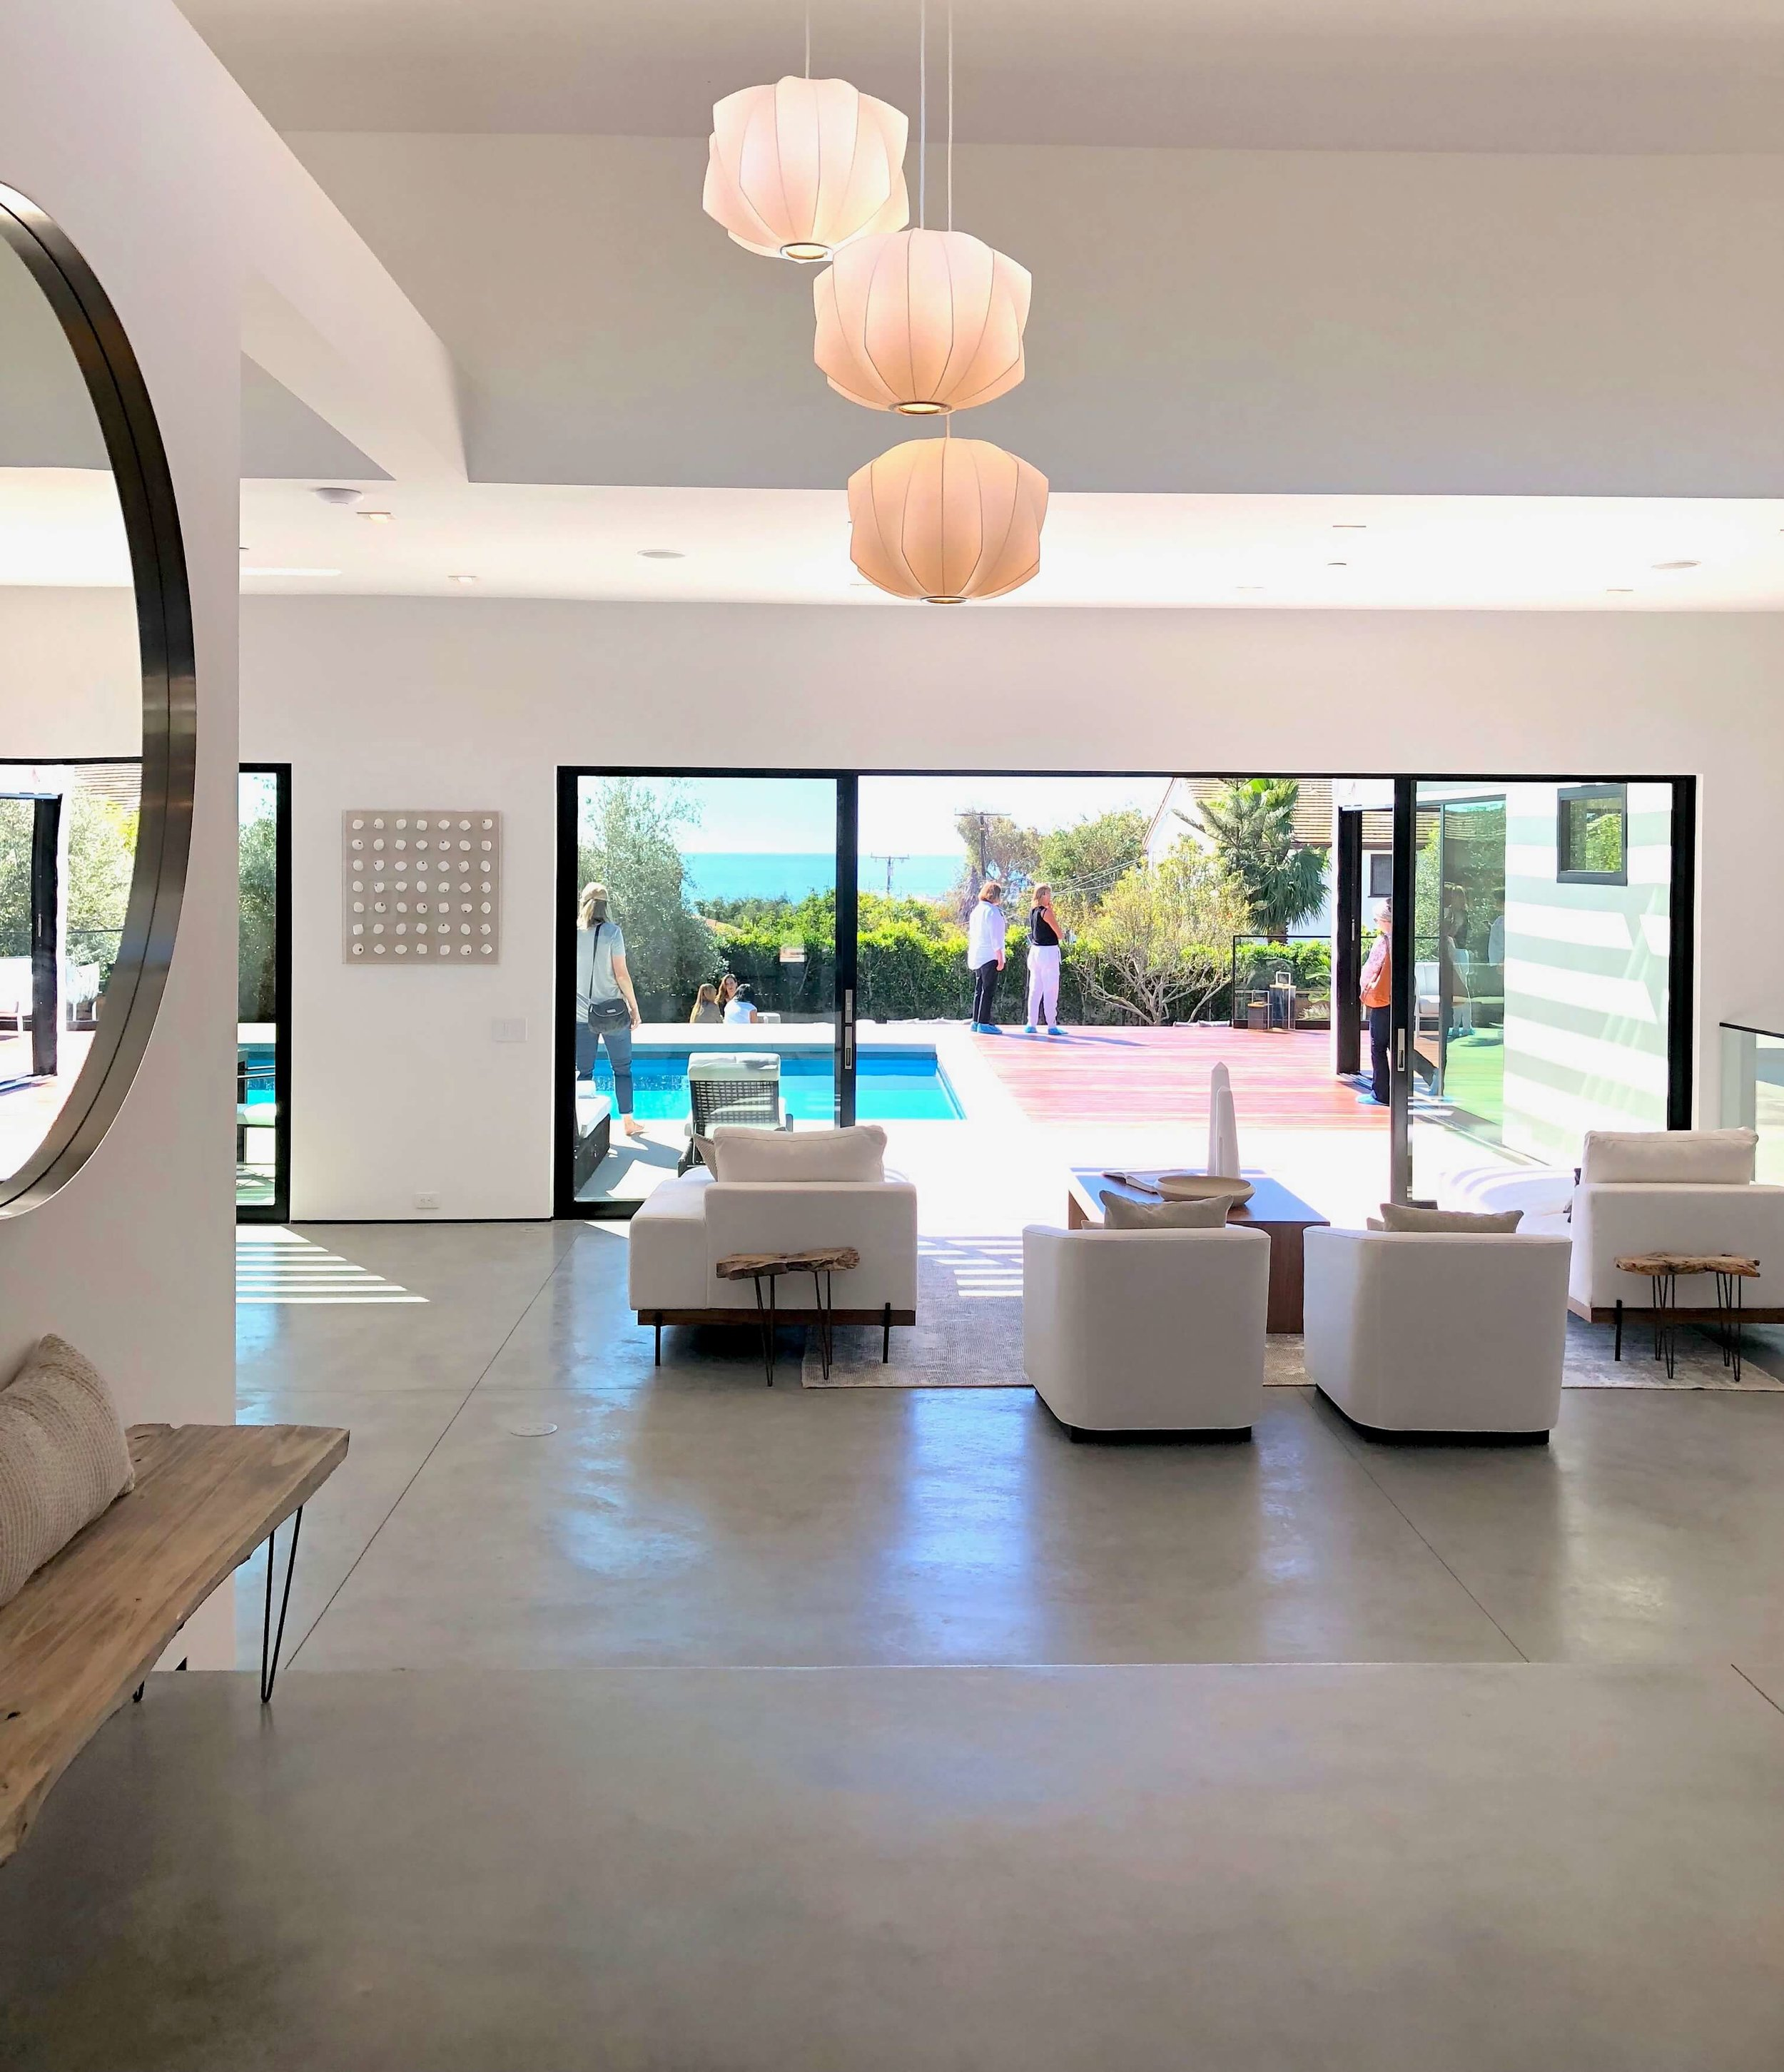 California Contemporary Dwell On Design S Fall Home Tours